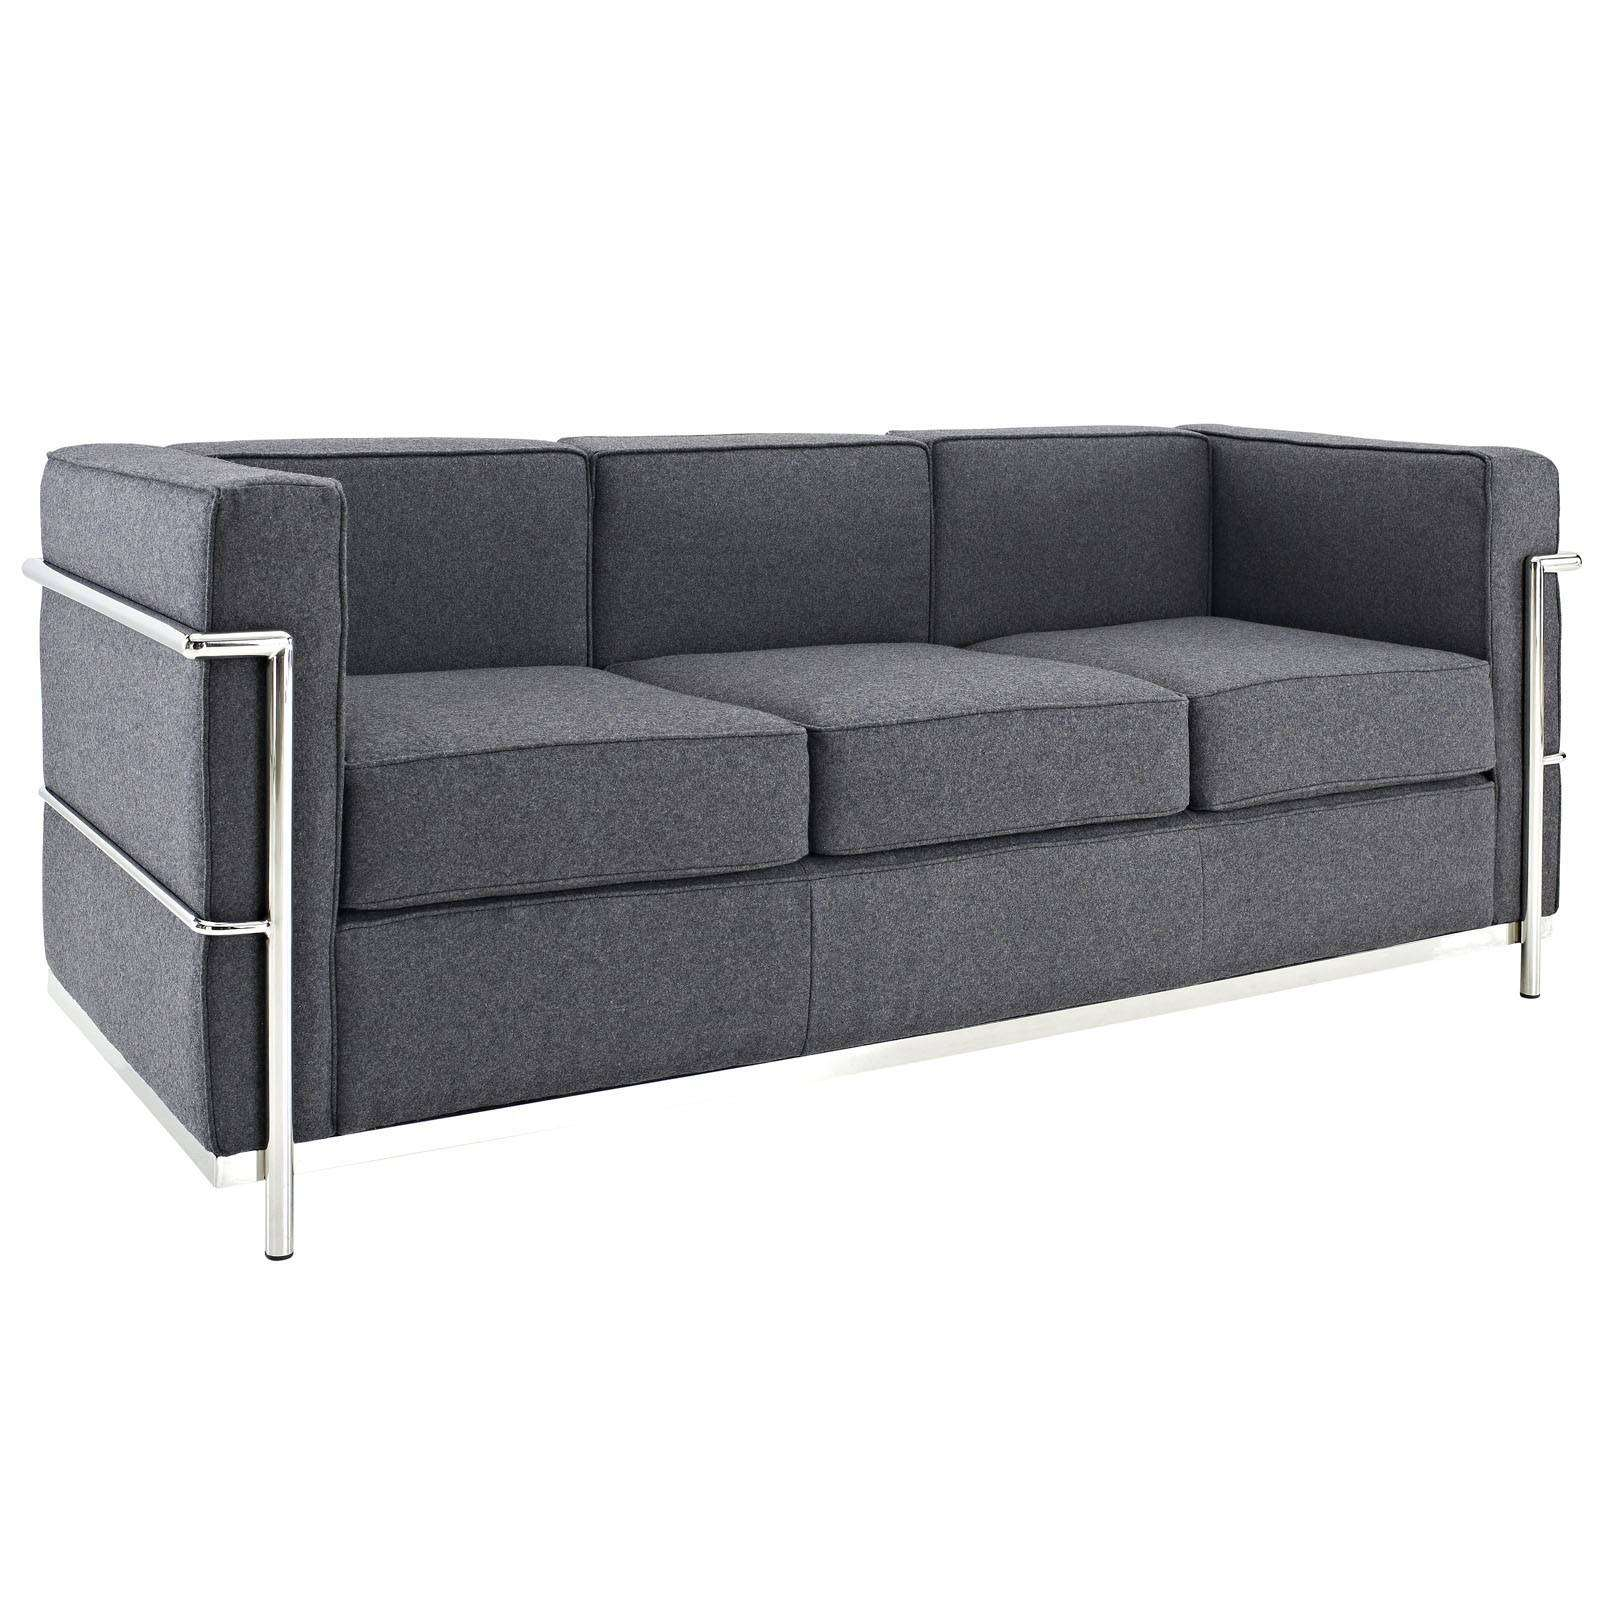 le corbusier style sofa le corbusier style lc2 sofa wool modern sofas by lexmod thesofa. Black Bedroom Furniture Sets. Home Design Ideas